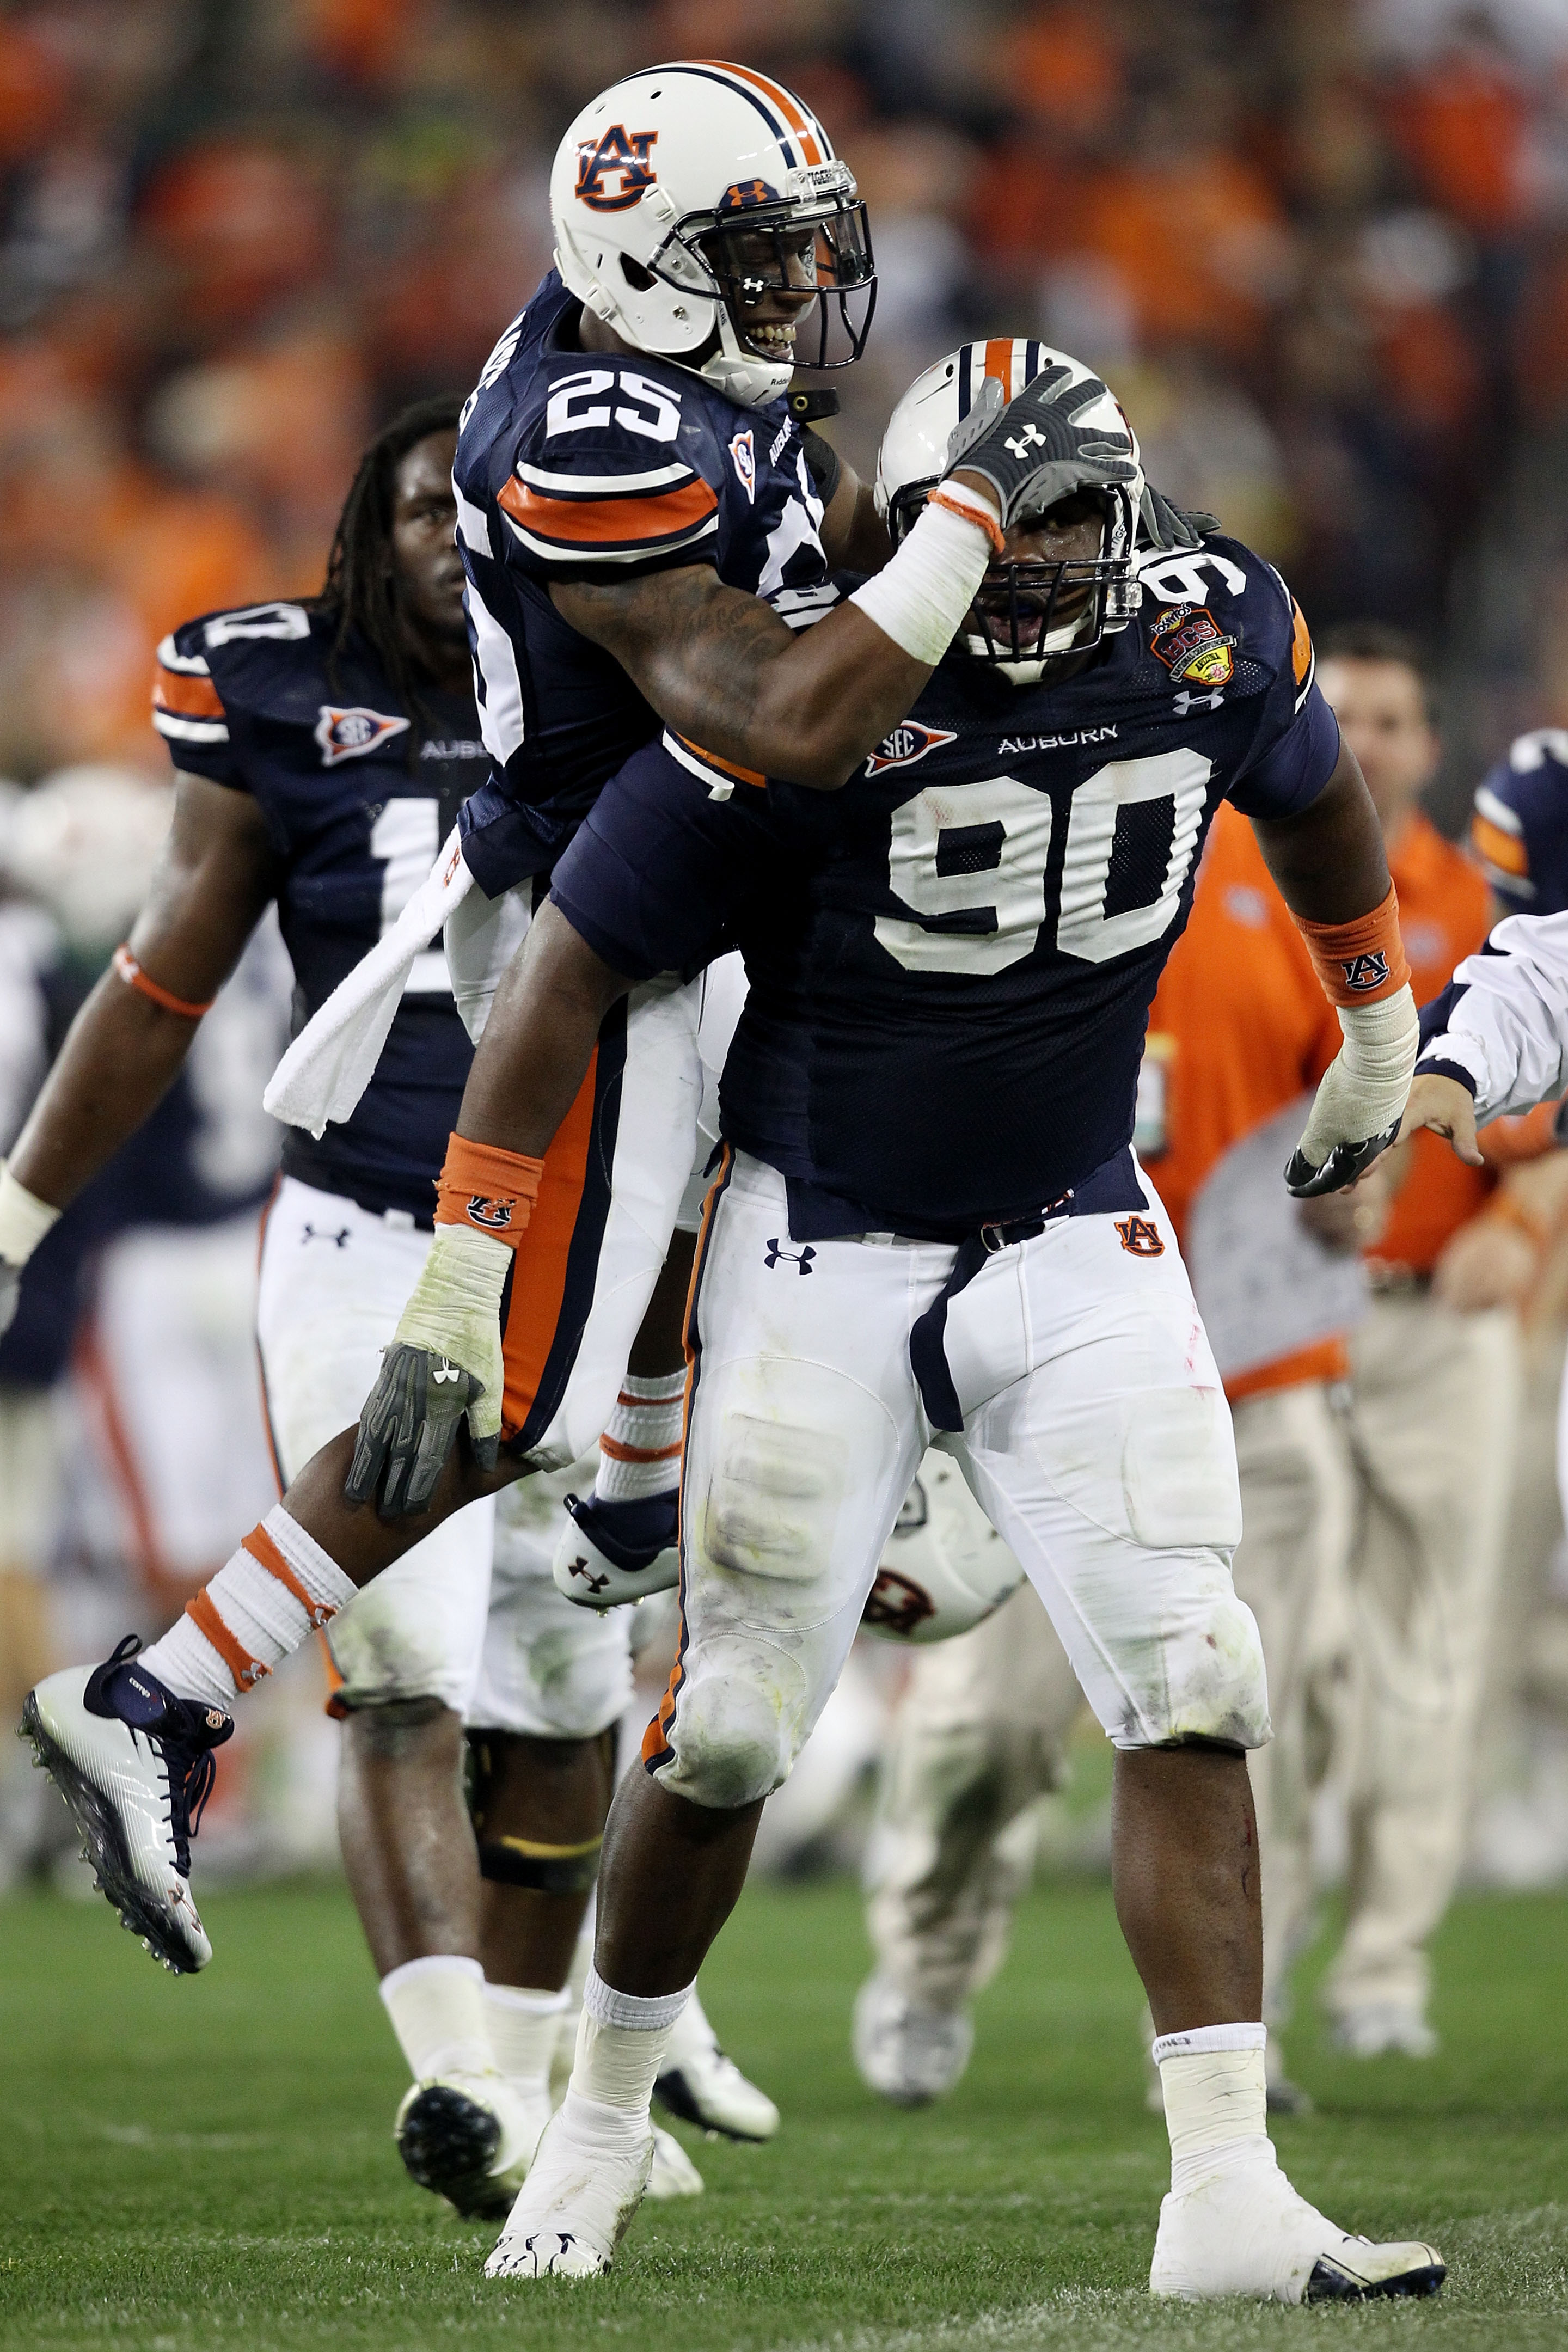 GLENDALE, AZ - JANUARY 10:  Nick Fairley #90 of the Auburn Tigers is congratulated by Daren Bates #25 on a sack against the Oregon Ducks during the Tostitos BCS National Championship Game at University of Phoenix Stadium on January 10, 2011 in Glendale, A